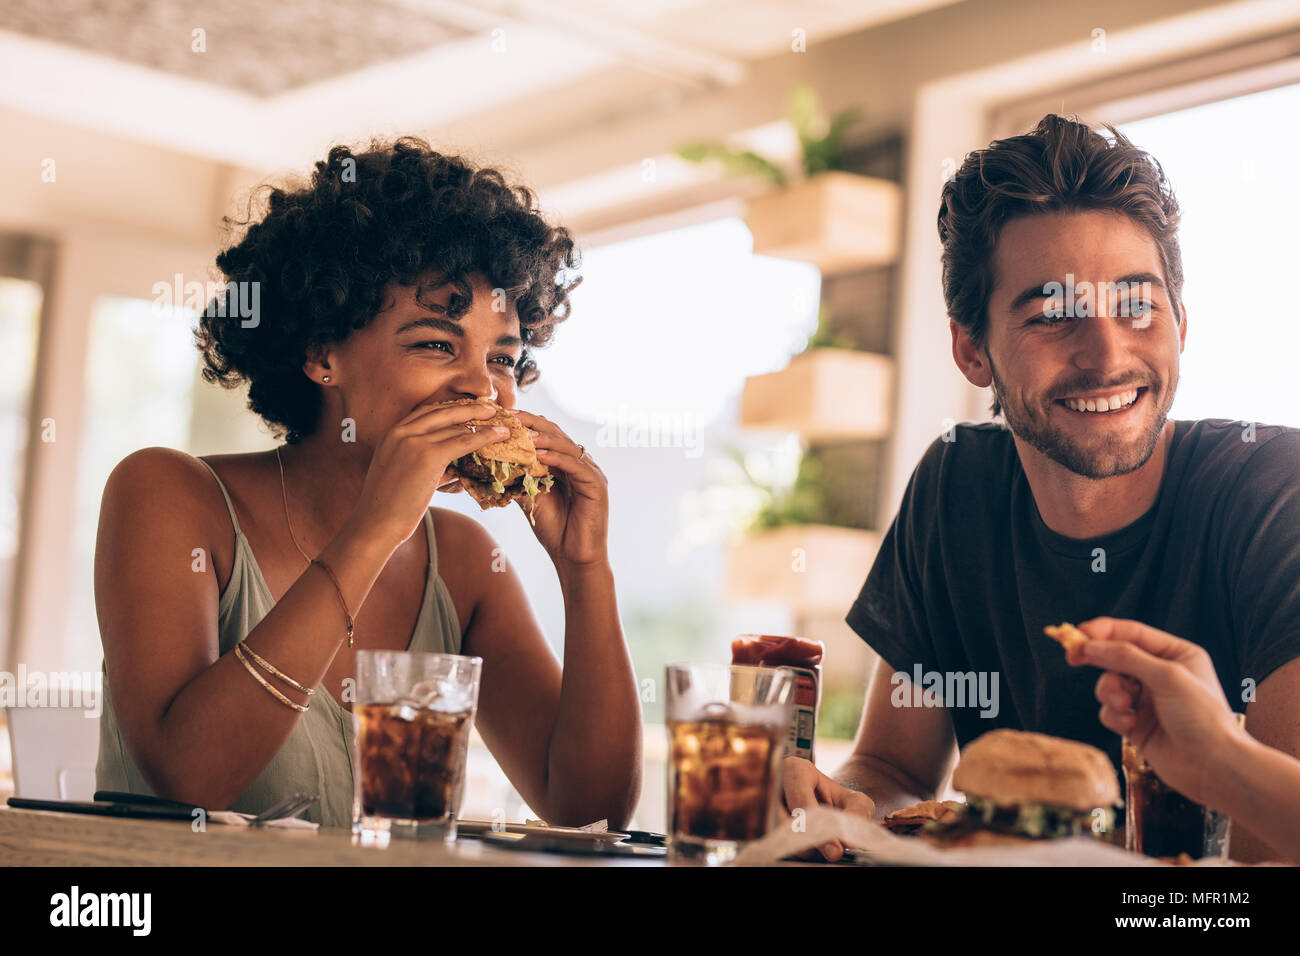 Young woman with friends eating burger at restaurant. Young people hanging out at a cafe chatting and eating burgers. - Stock Image